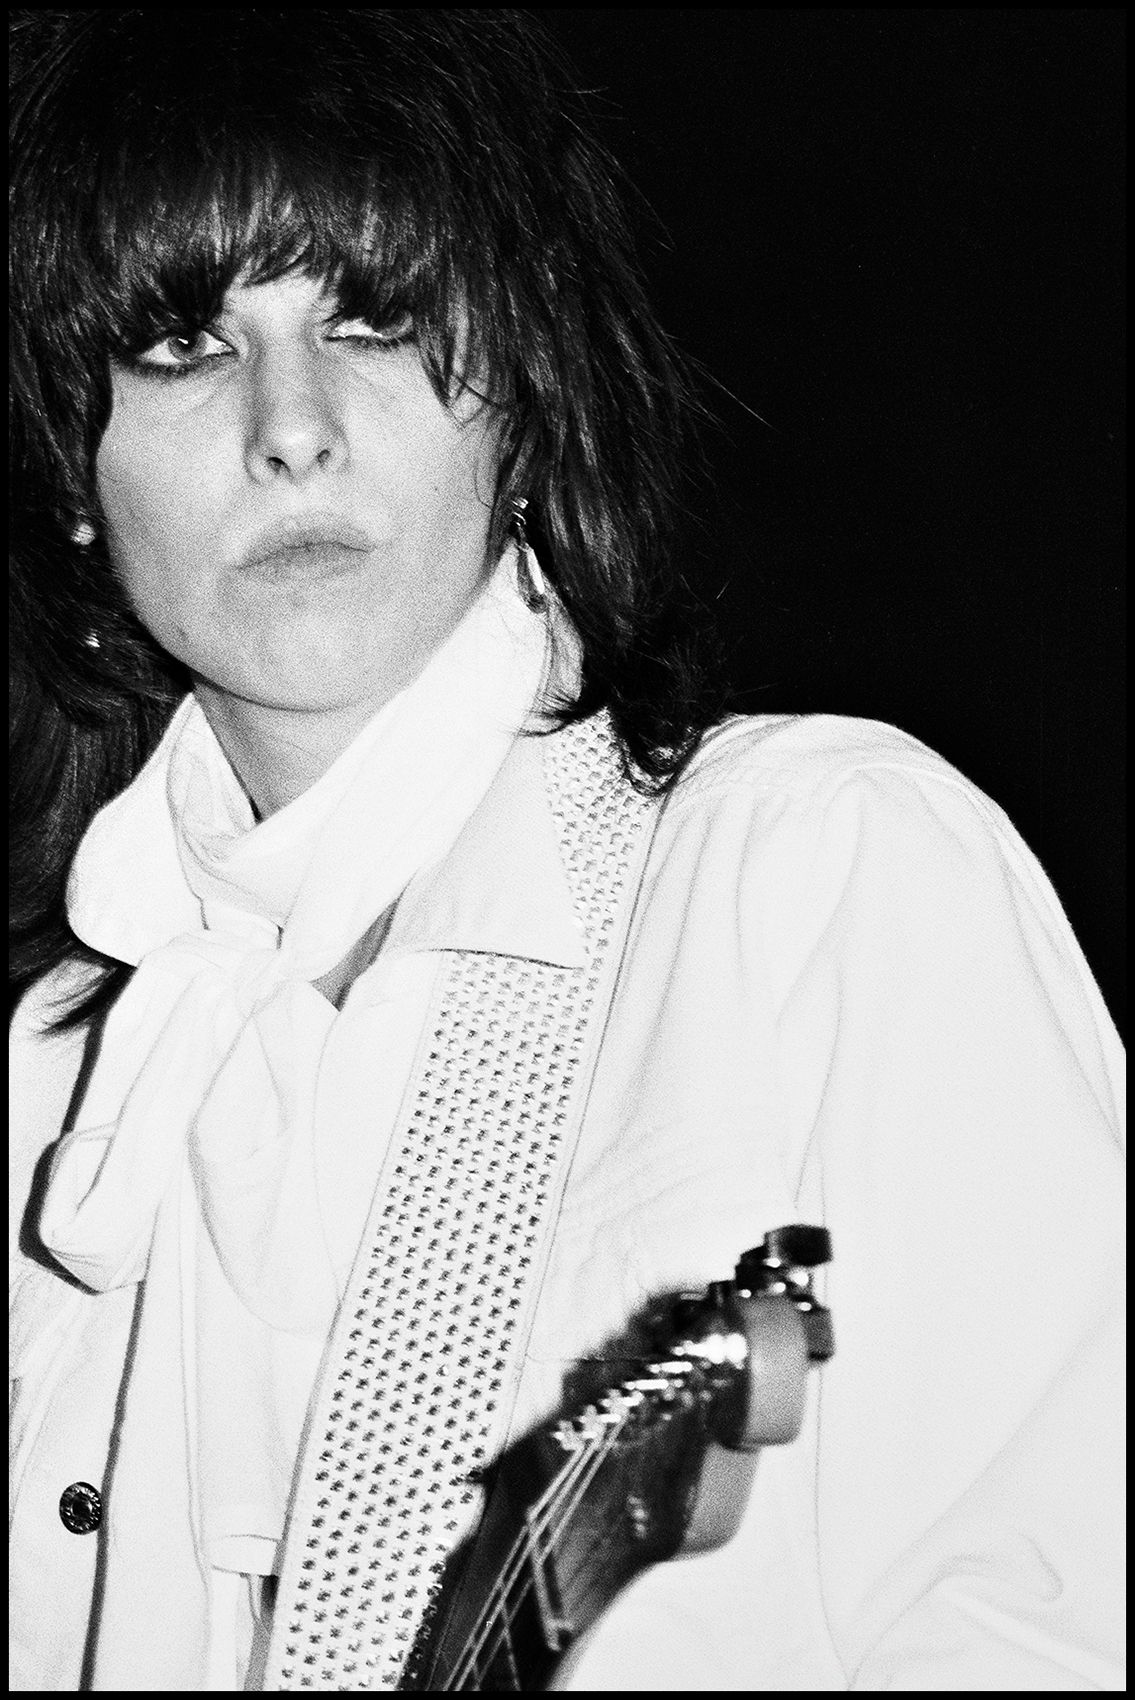 Chrissie Hynde - The Pretenders, The Ritz, NYC 1980